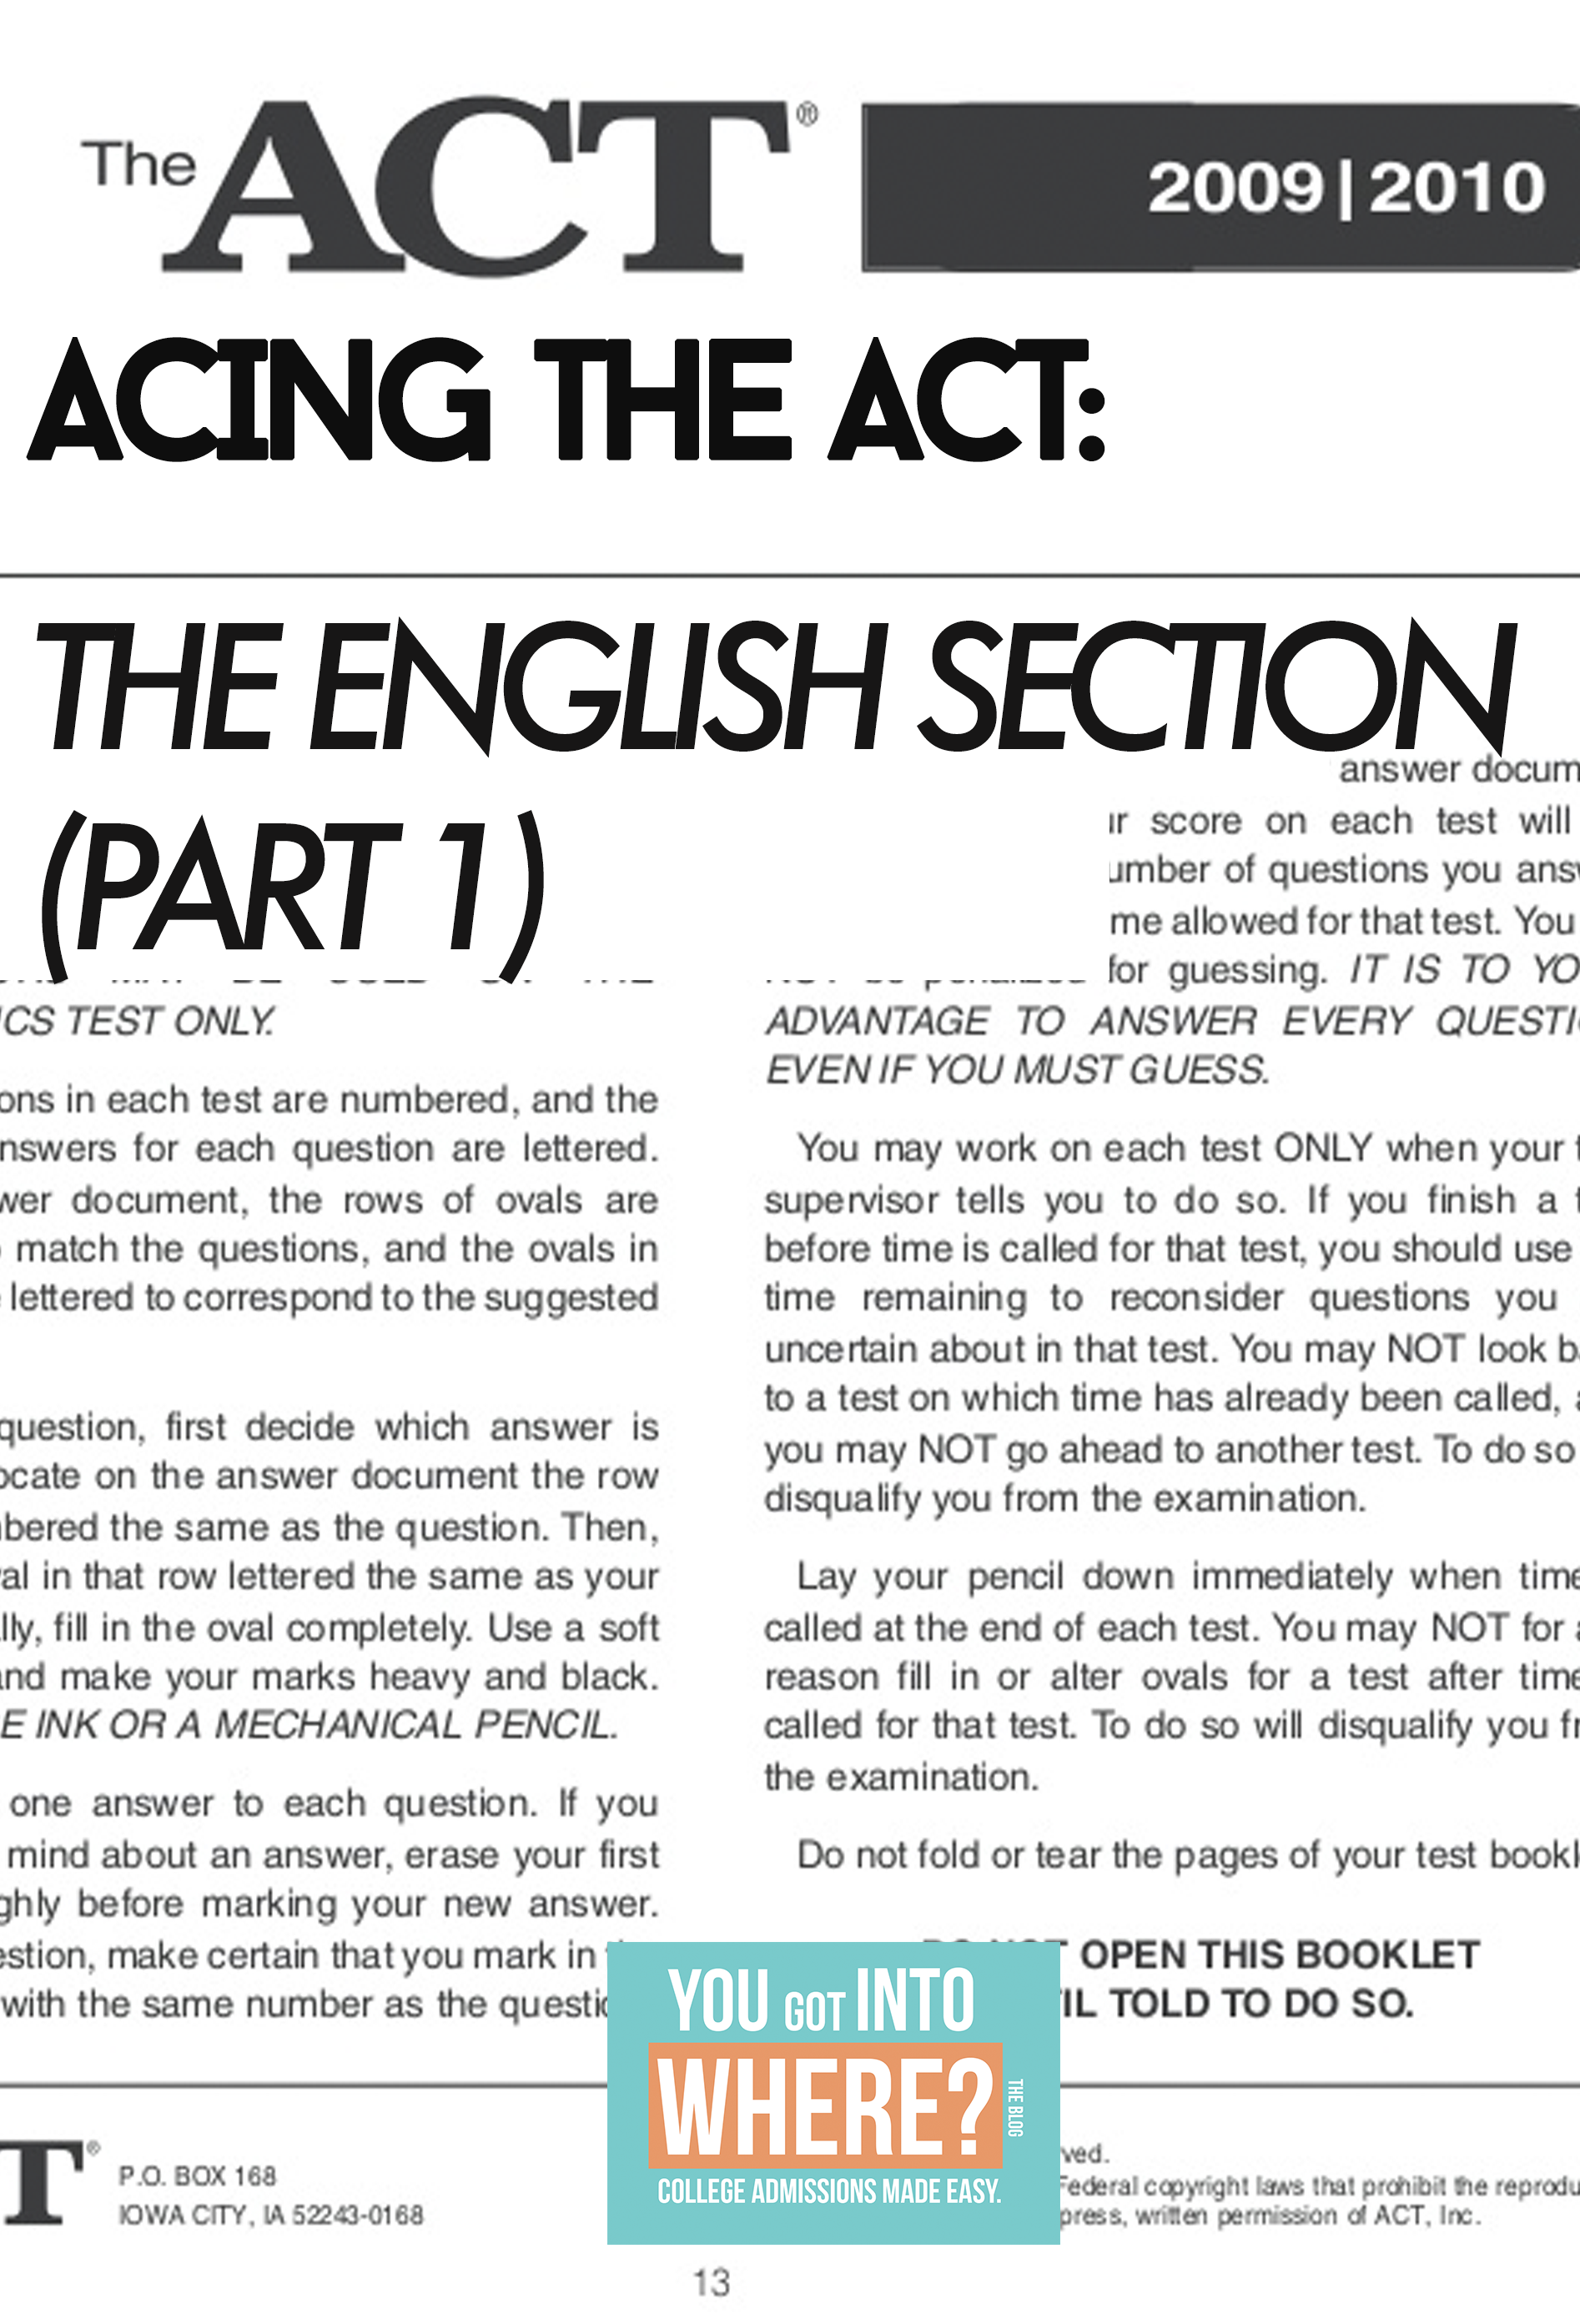 how-to-ace-the-english-section-of-the-act-exam.png